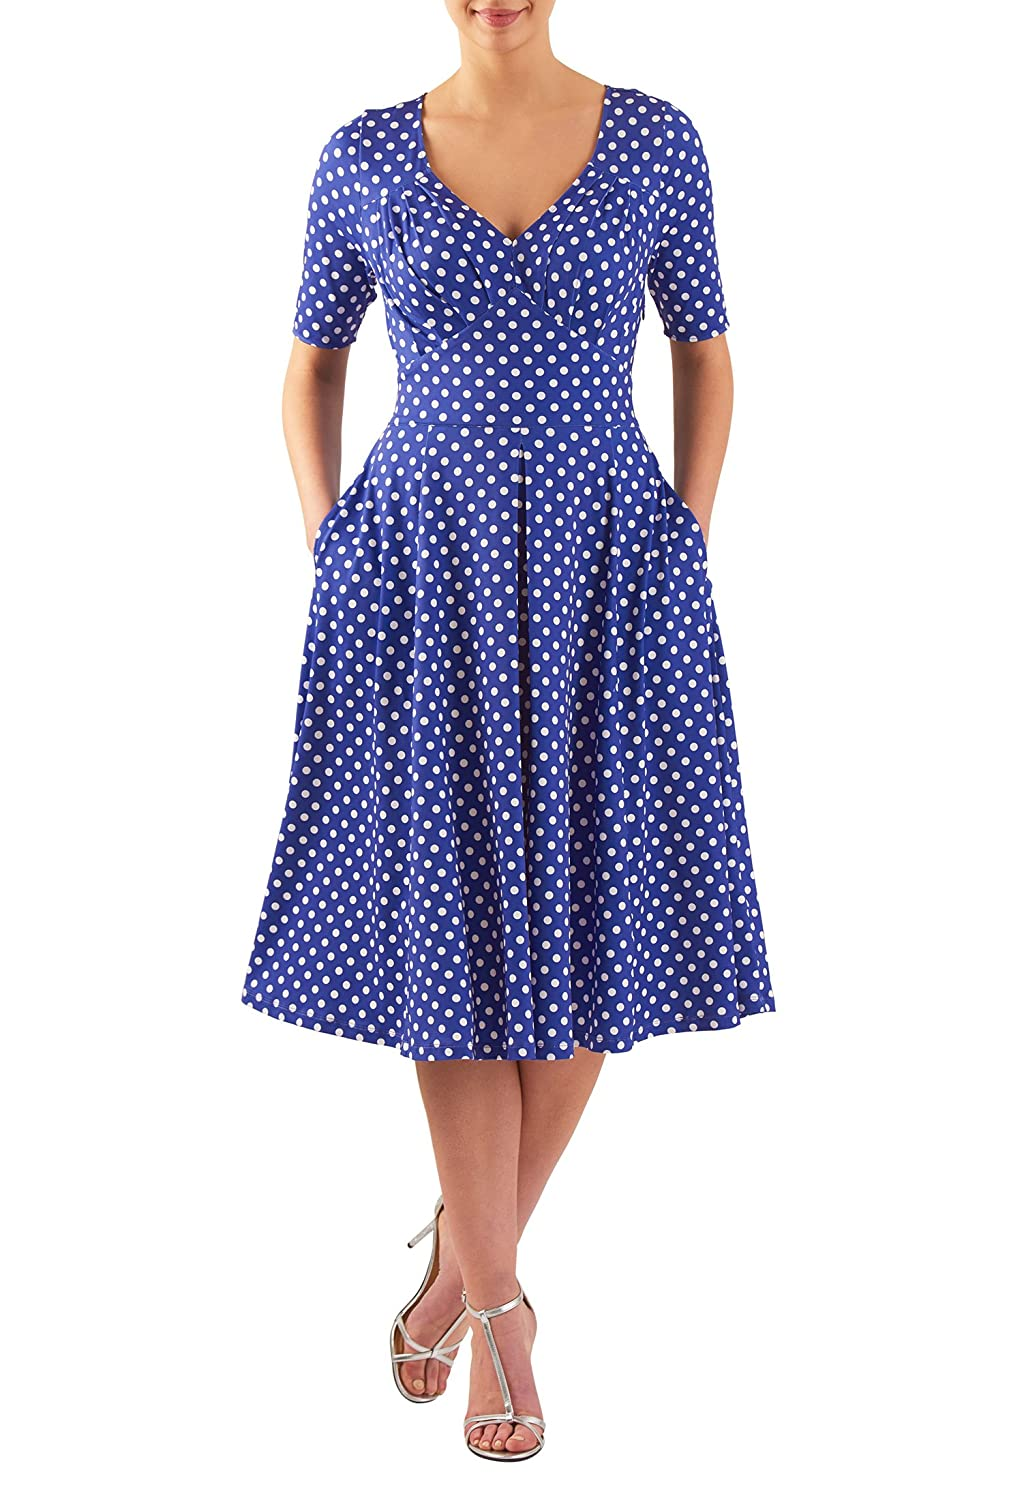 Vintage Polka Dot Dresses – Ditsy 50s Prints eShakti Womens Feminine pleated polka dot polyjersey dress $58.95 AT vintagedancer.com